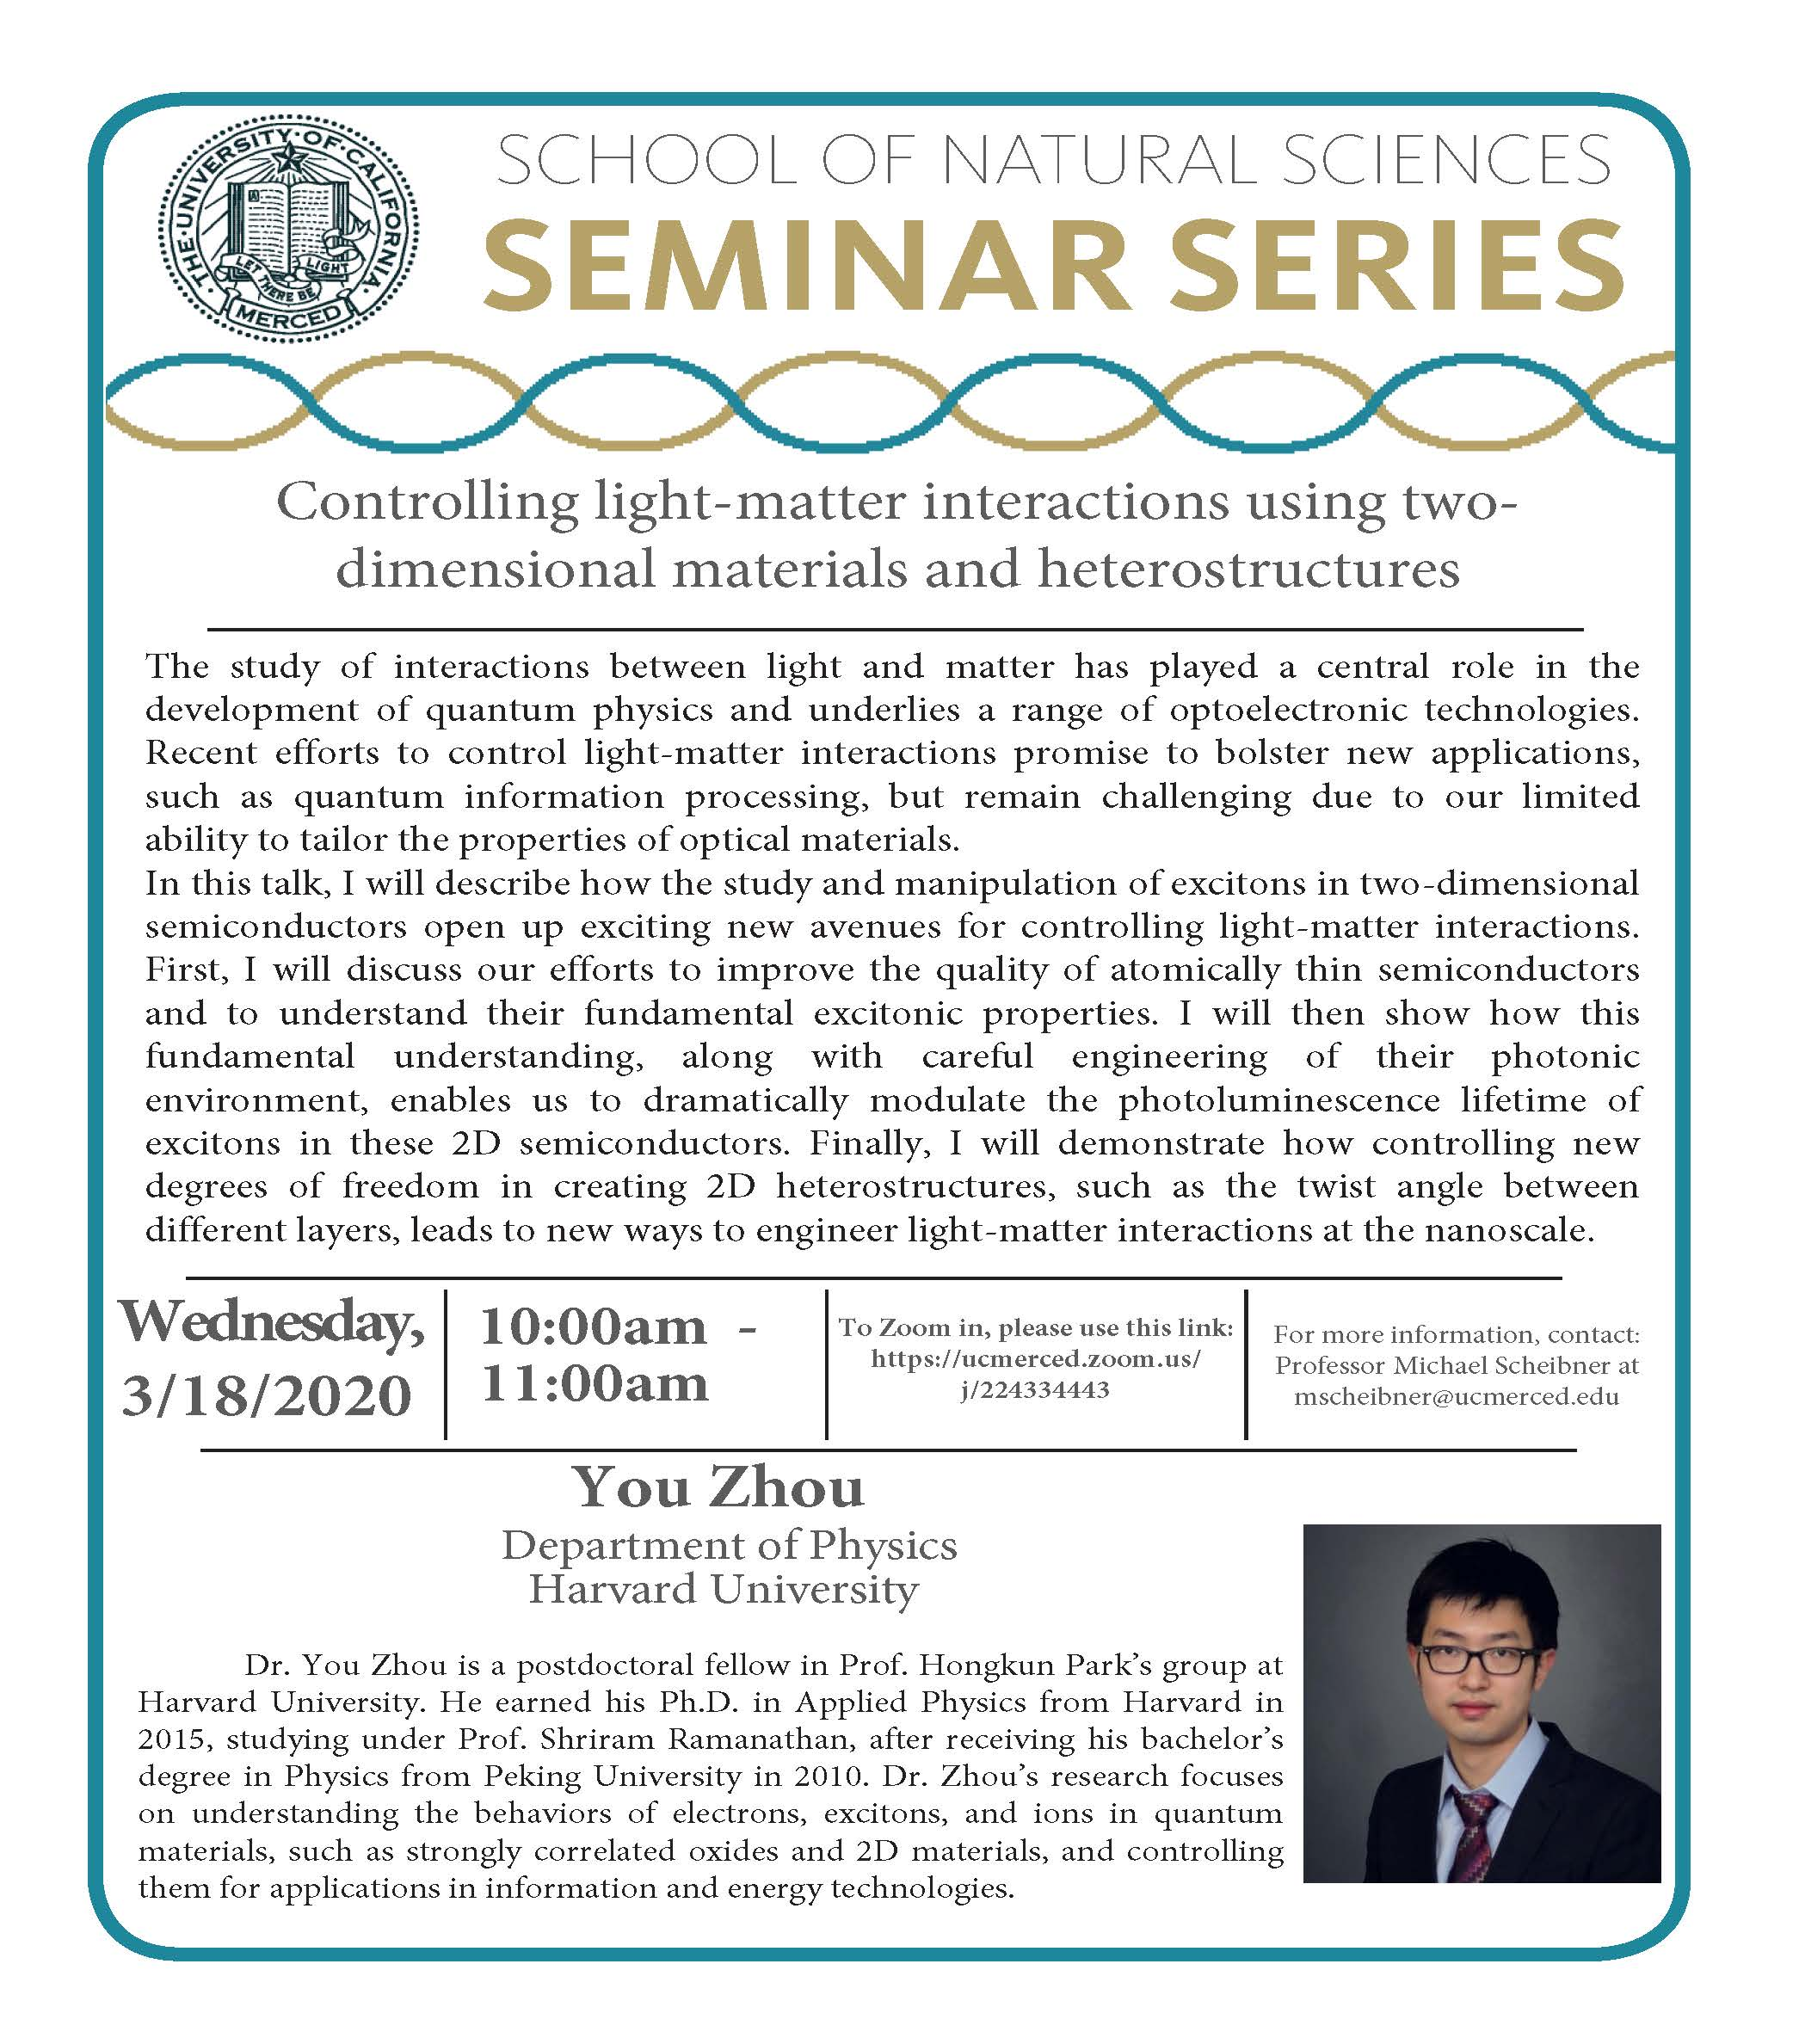 Physics Seminar for Dr. You Zhou